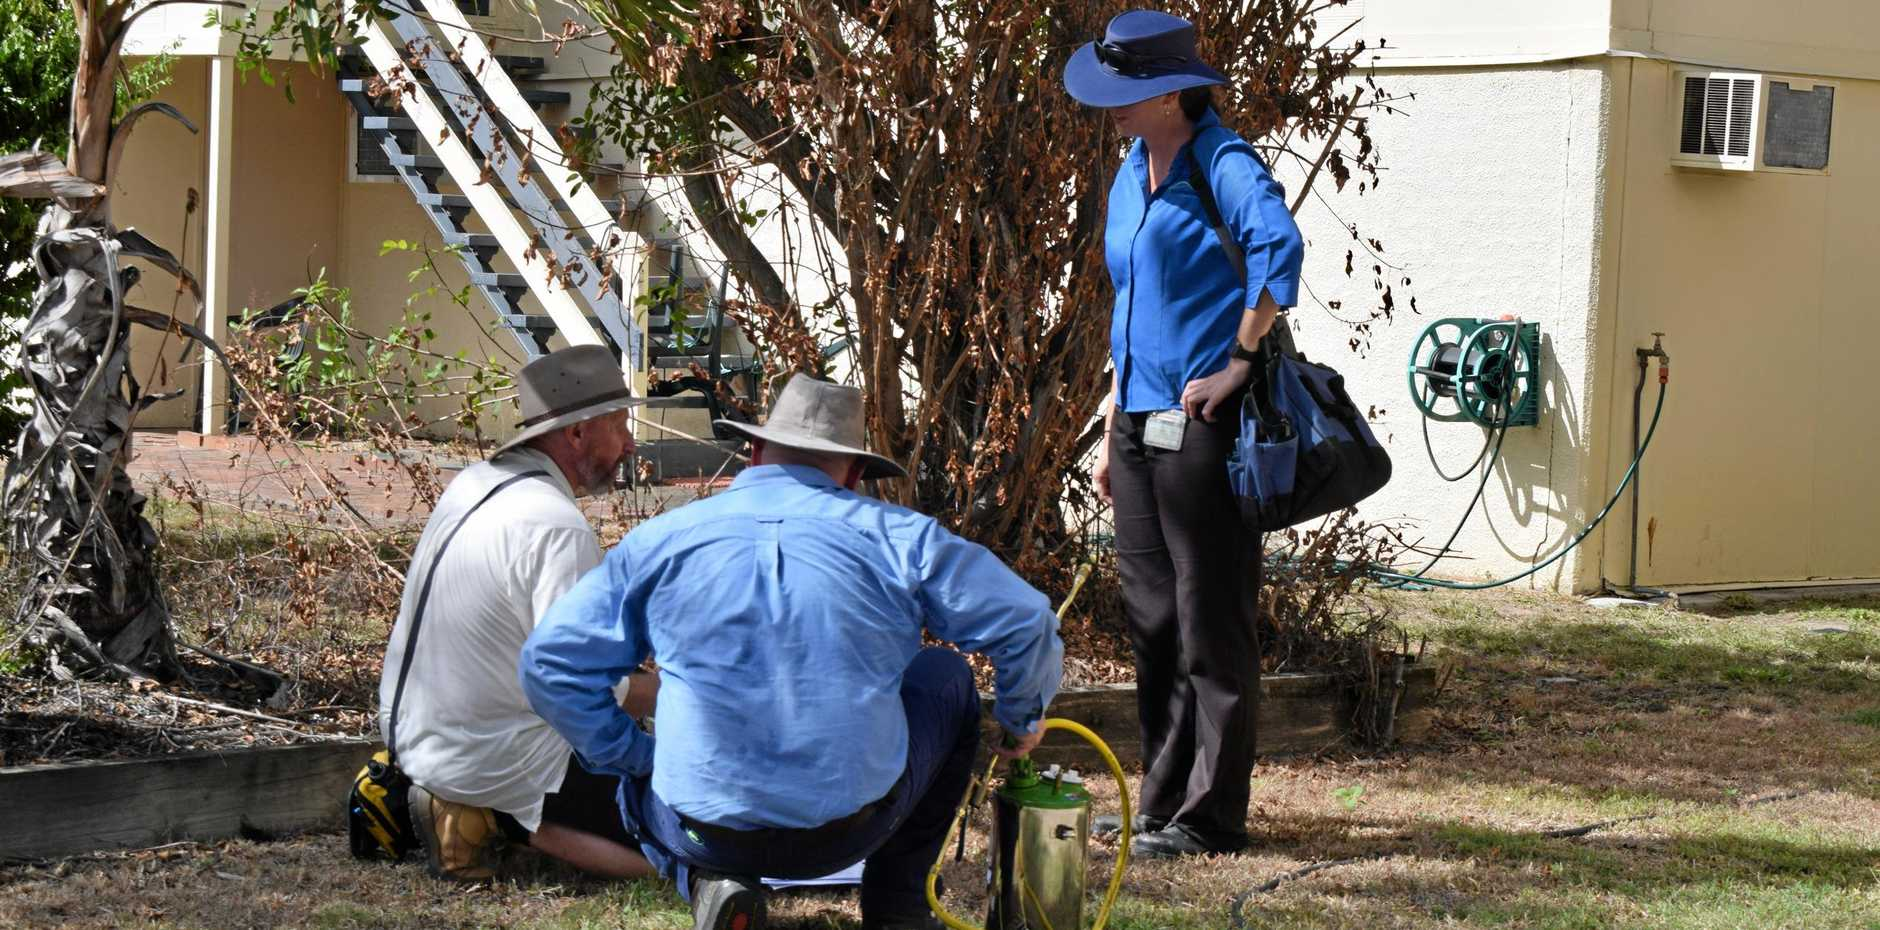 Health officials door-knocked to alert residents about dengue fever being diagnosed in their suburb.